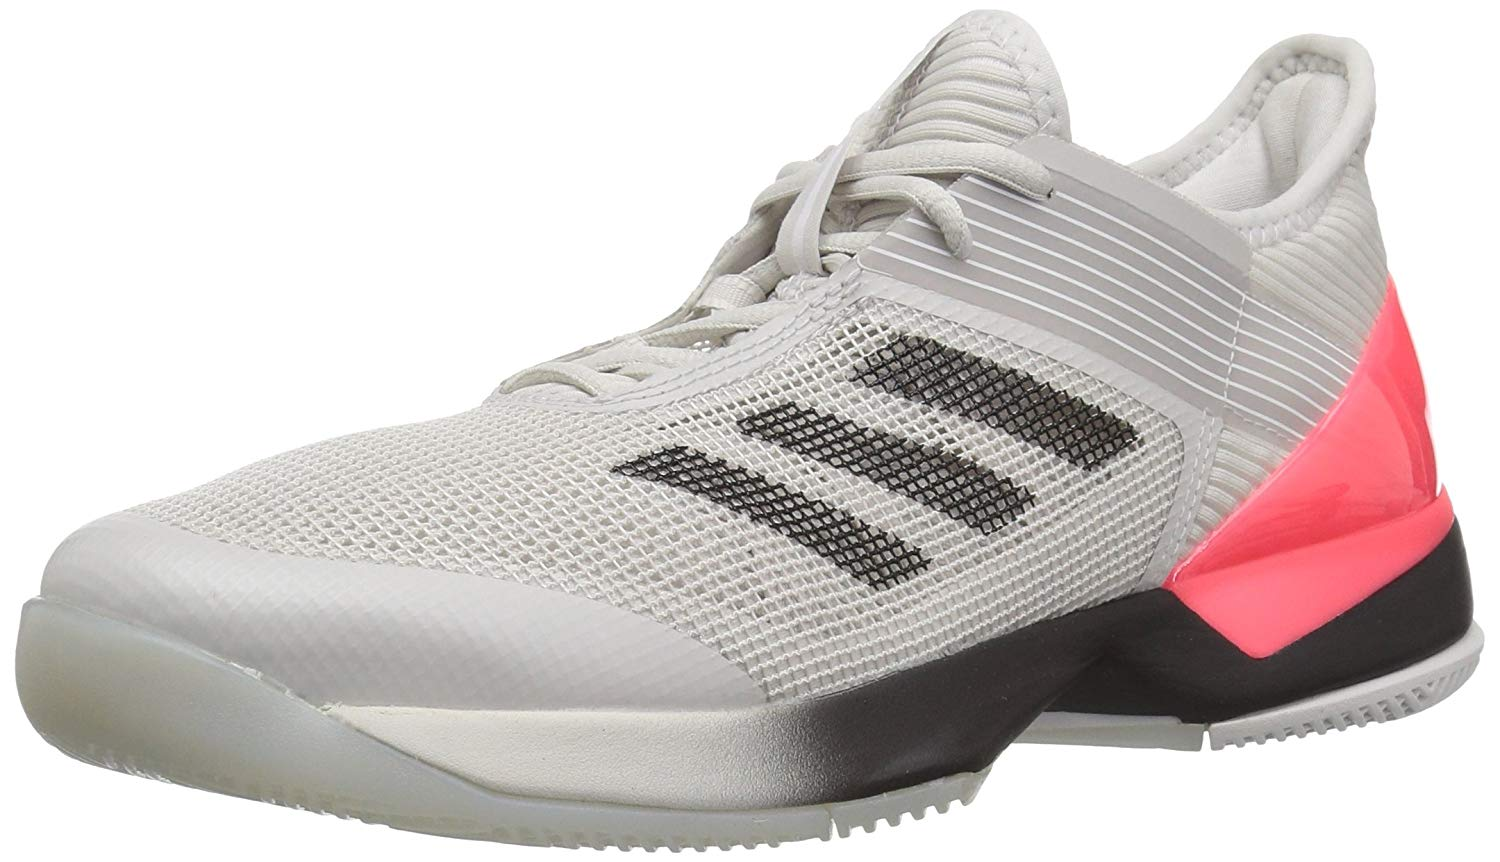 Tennis Womens Adidas Adizero Ubersonic 3 Tennis Shoes